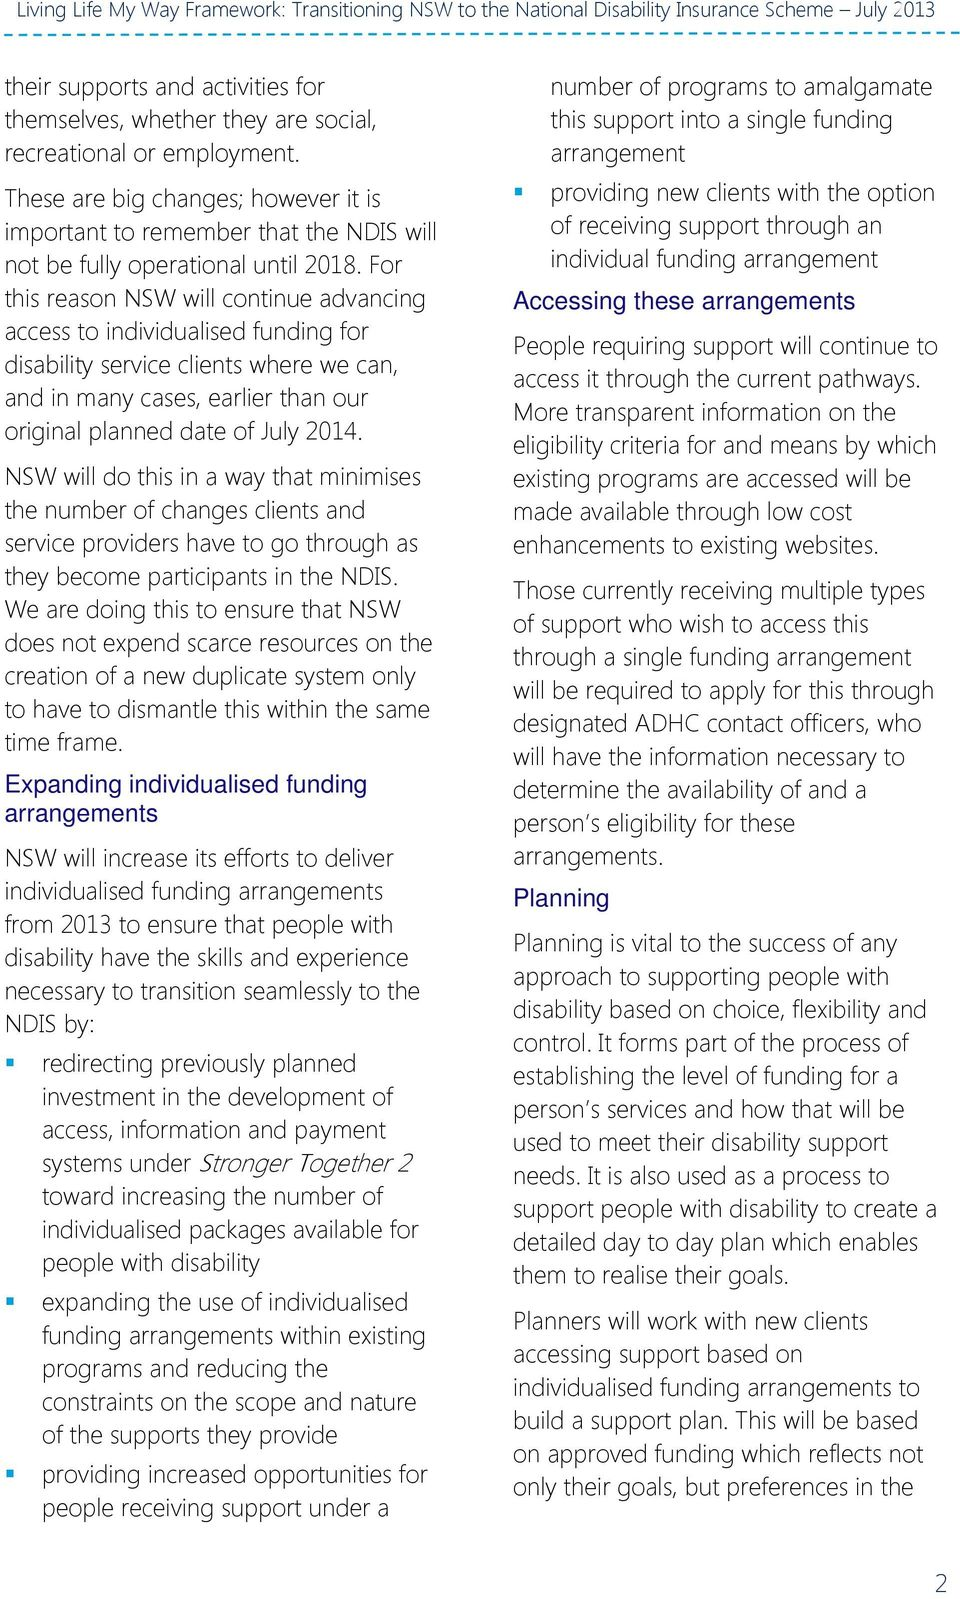 For this reason NSW will continue advancing access to individualised funding for disability service clients where we can, and in many cases, earlier than our original planned date of July 2014.